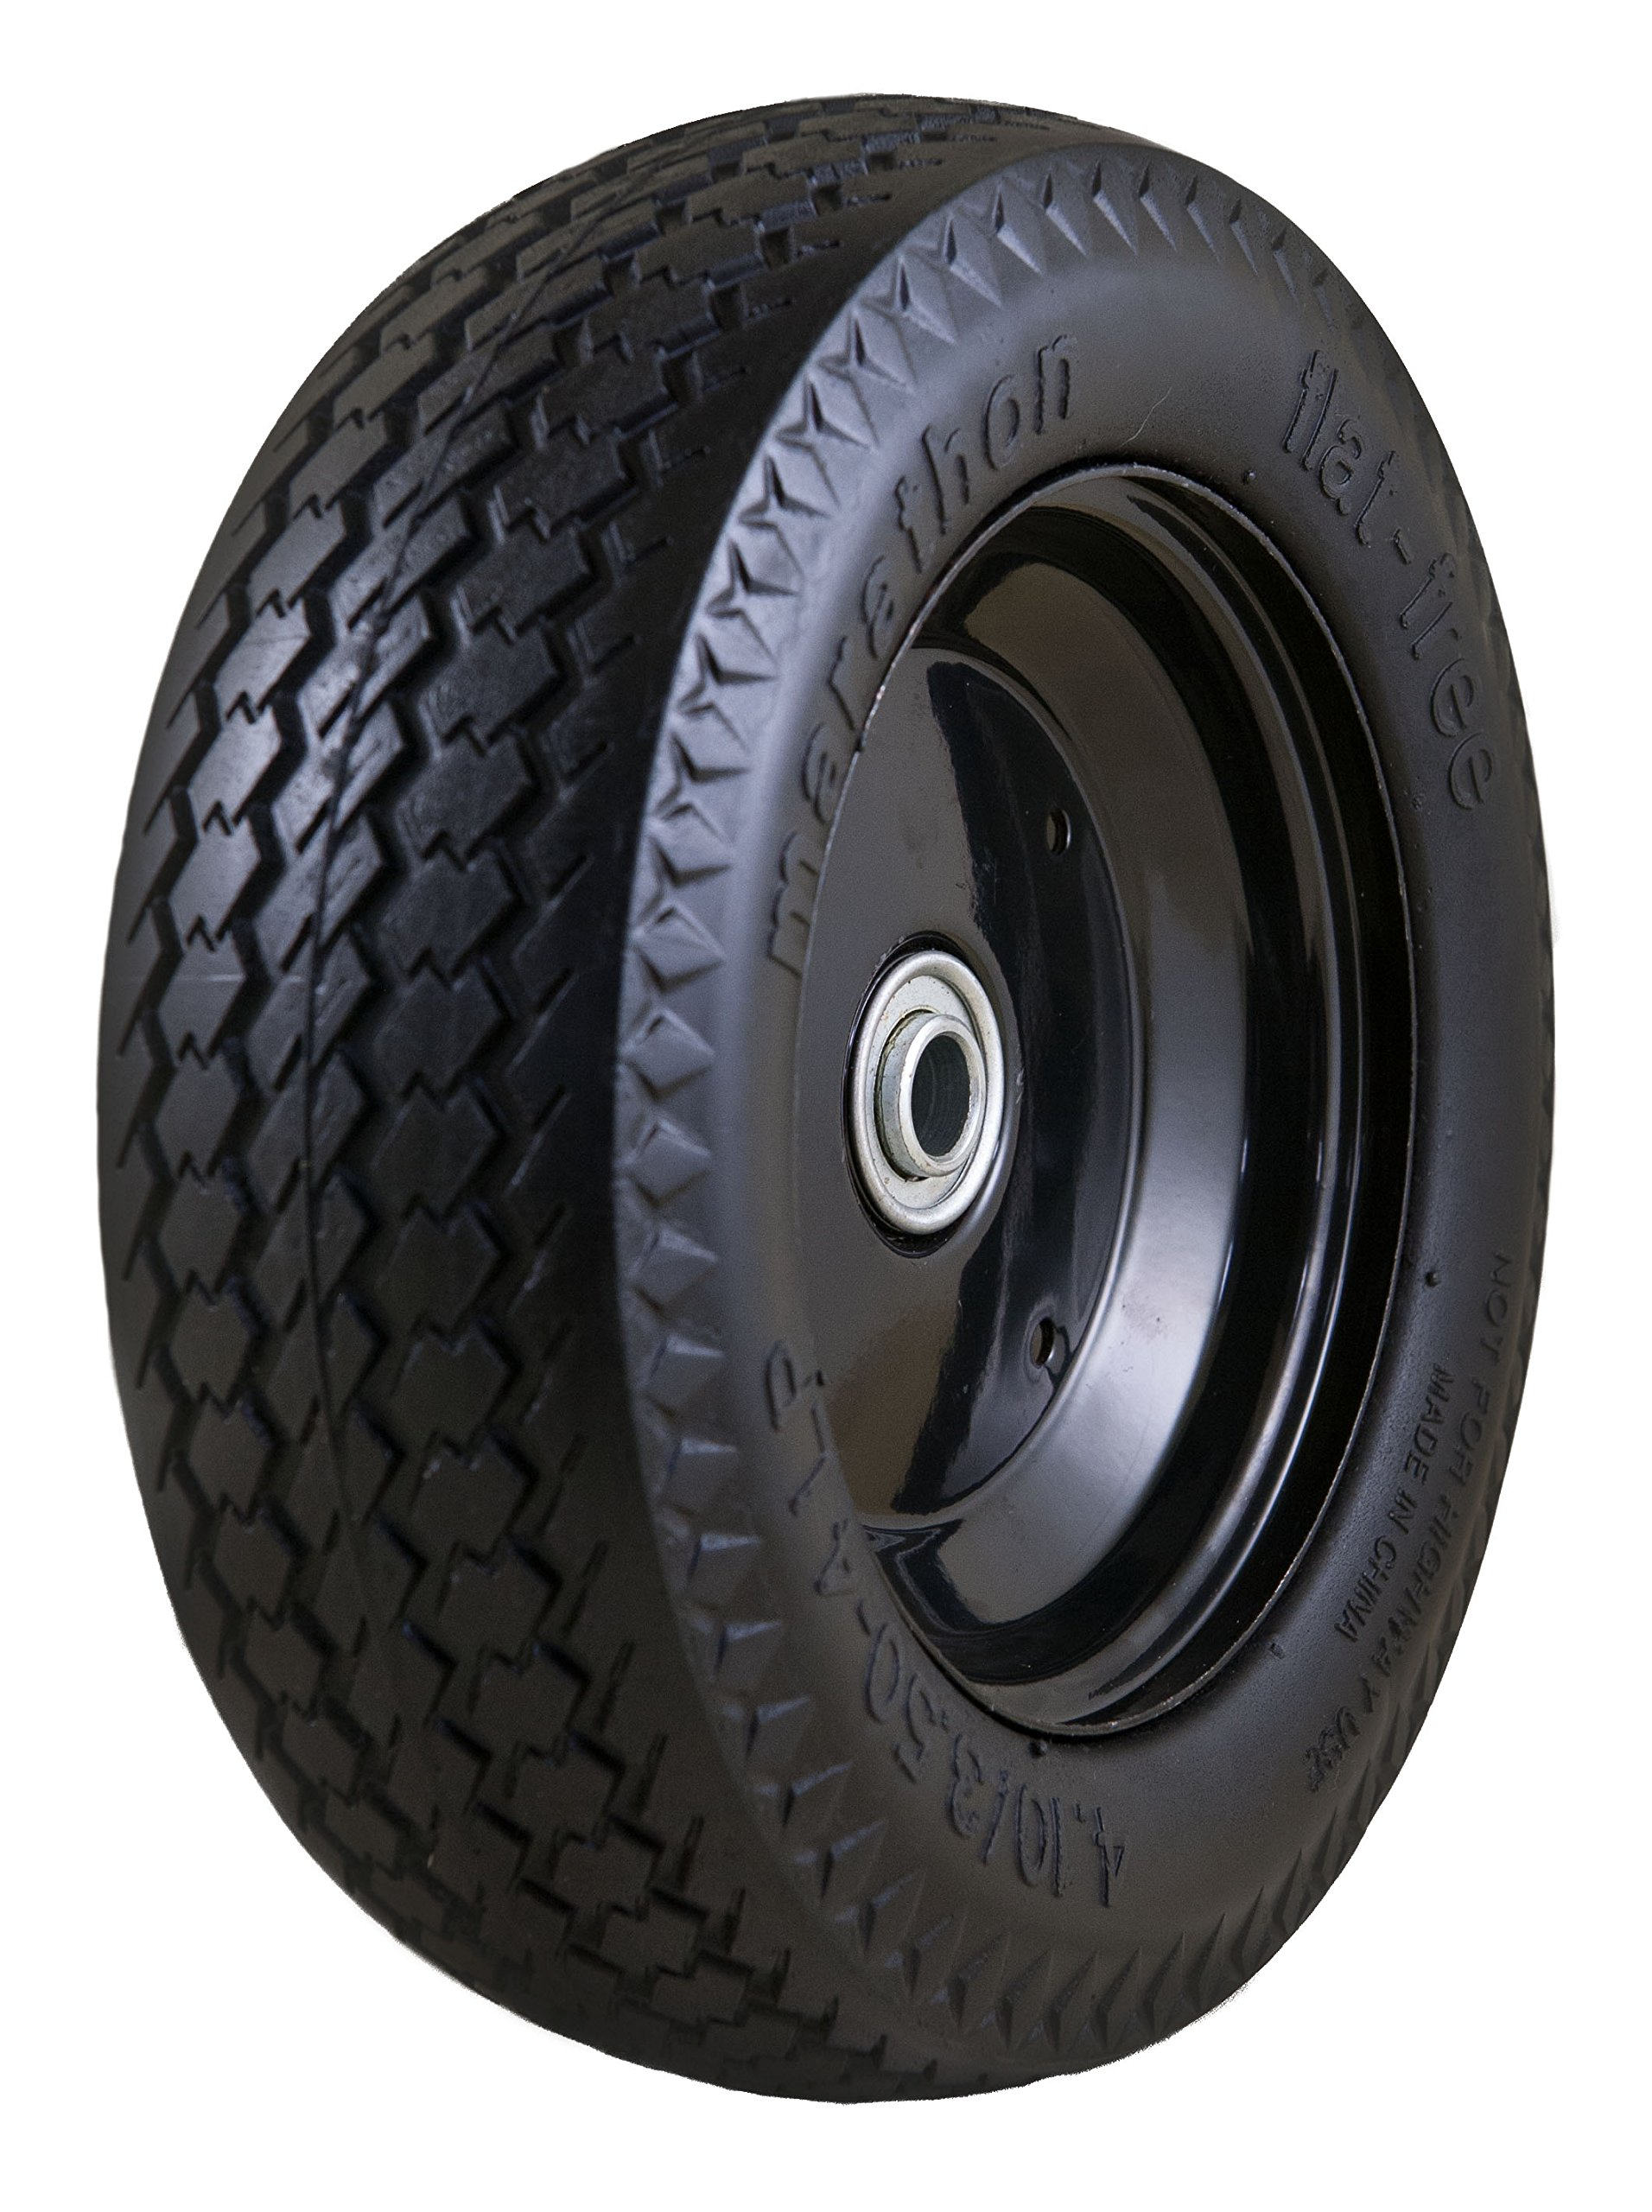 Marathon Universal Fit, Flat Free, Hand Truck/All Purpose Utility Tire on Wheel with Adapter Kit